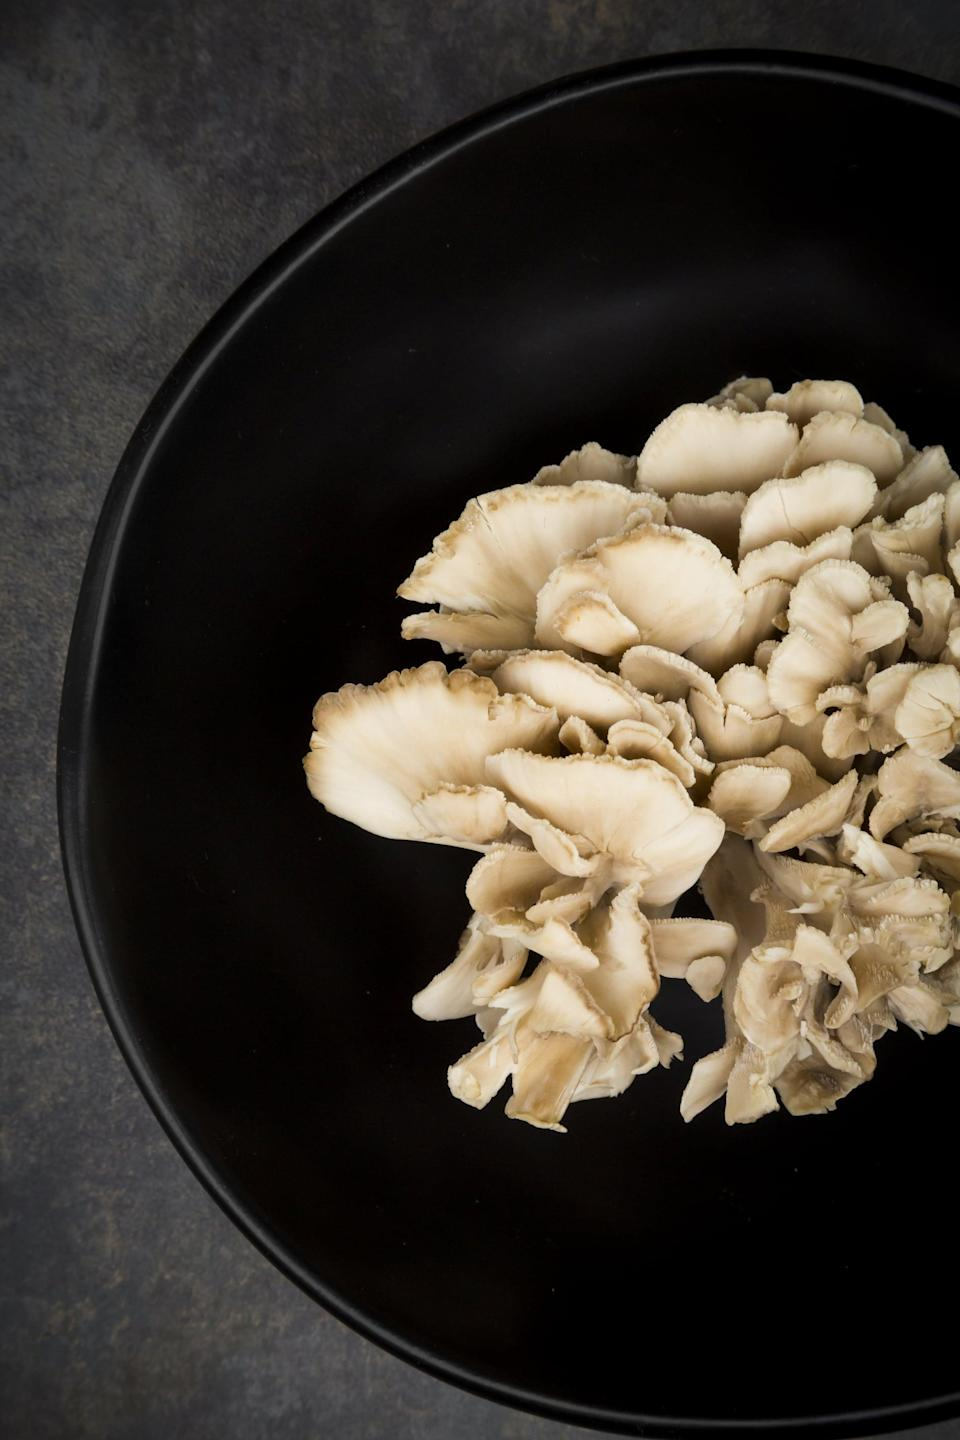 "<p>Maitake mushrooms are a delicious addition to pizza, stir-fry, and soup, but they aren't just beneficial because of the umami flavor they add to dishes. Data suggests that <a href=""https://pubmed.ncbi.nlm.nih.gov/21034160/"" class=""link rapid-noclick-resp"" rel=""nofollow noopener"" target=""_blank"" data-ylk=""slk:consumption of maitake mushroom extract may support ovulation"">consumption of maitake mushroom extract may support ovulation</a> in some people with a PCOS diagnosis. Mushrooms in general can be an antioxidant-rich addition to many meals.</p>"